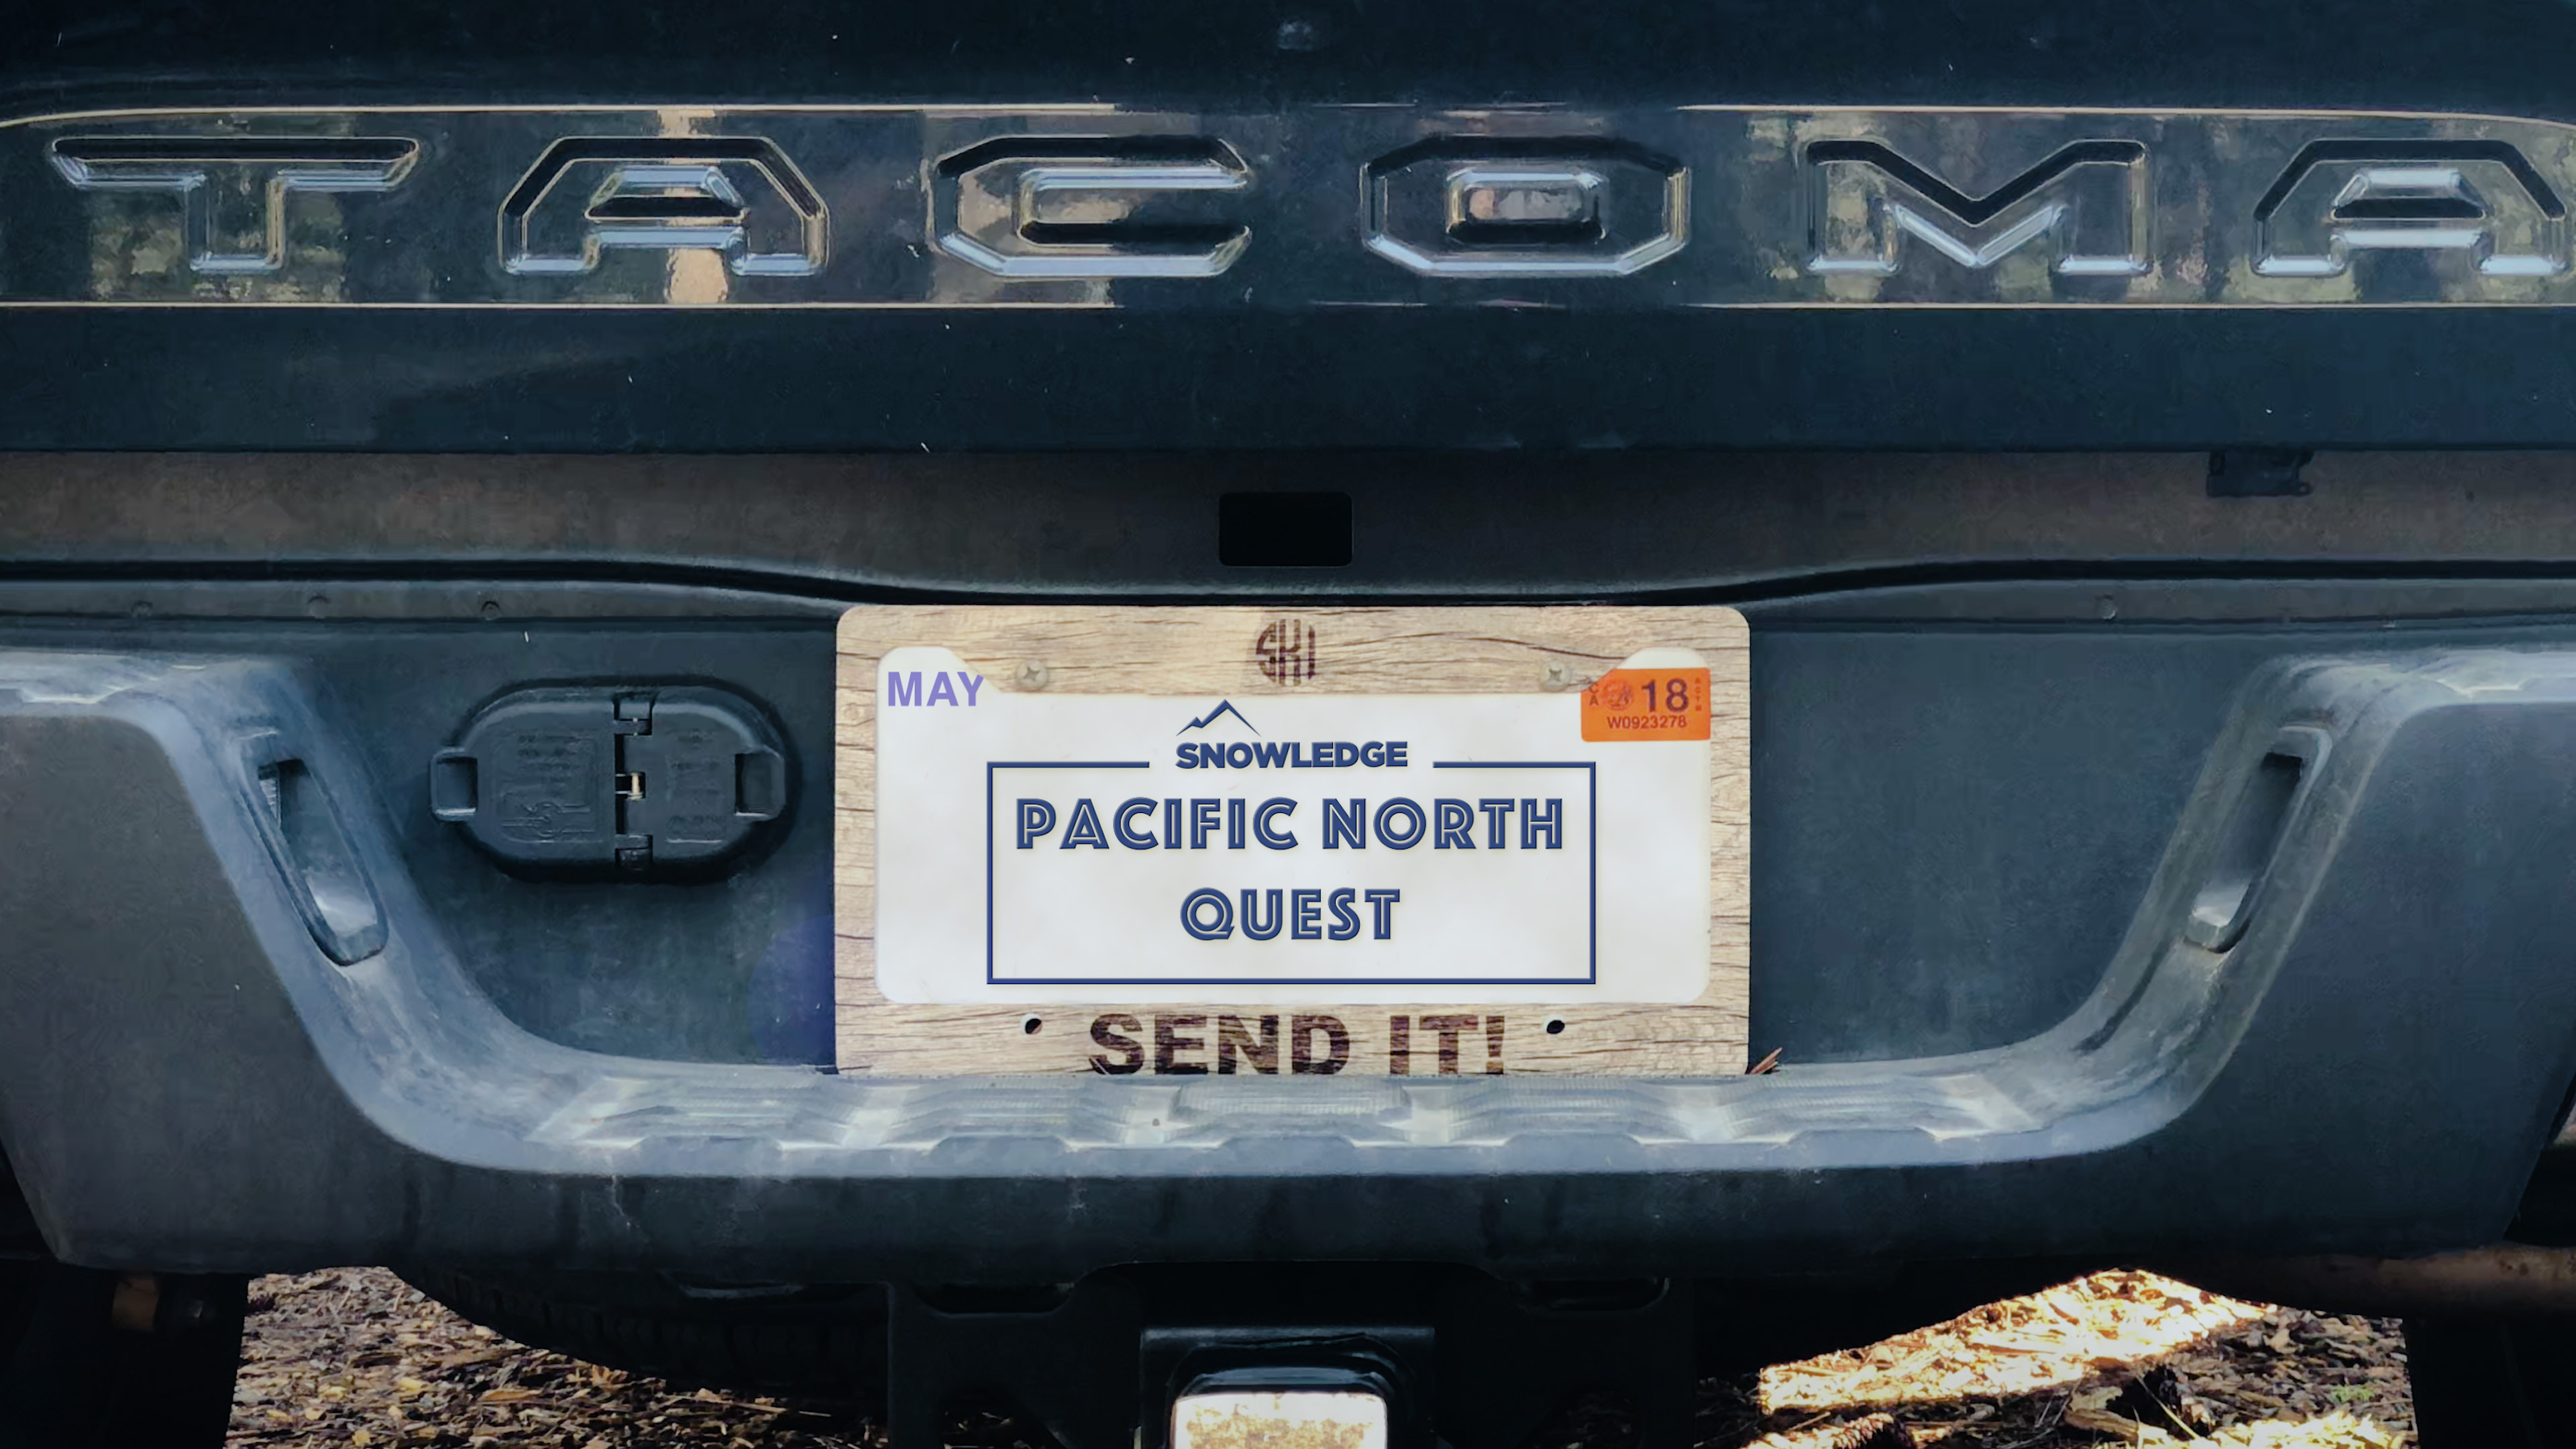 truck number plate for a snowledge ski trip